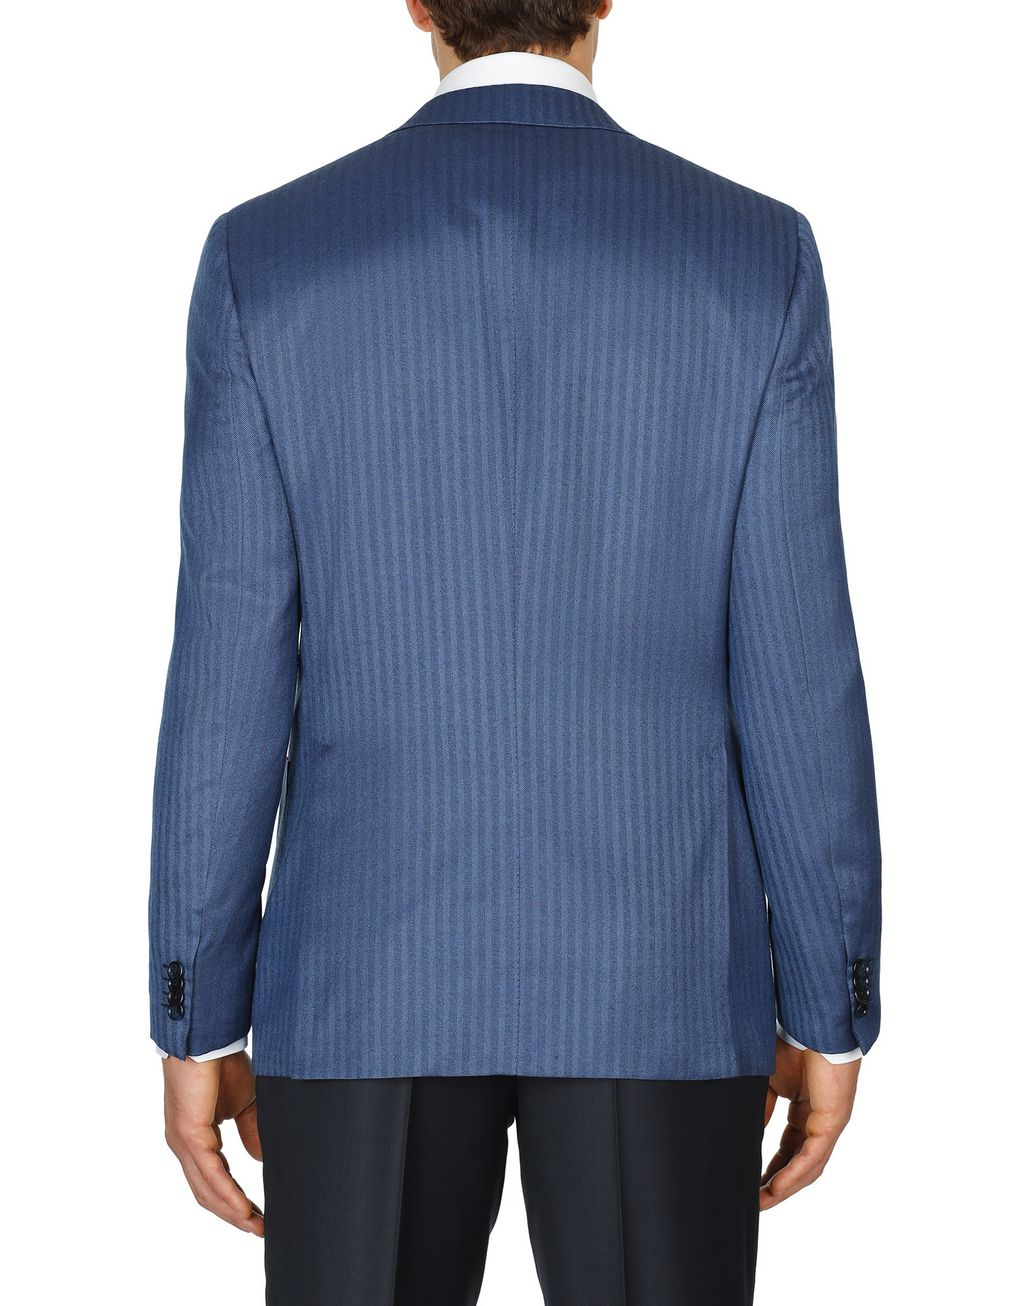 BRIONI Bluette Herringbone Condotti Cashmere Jacket Suits & Jackets Man d